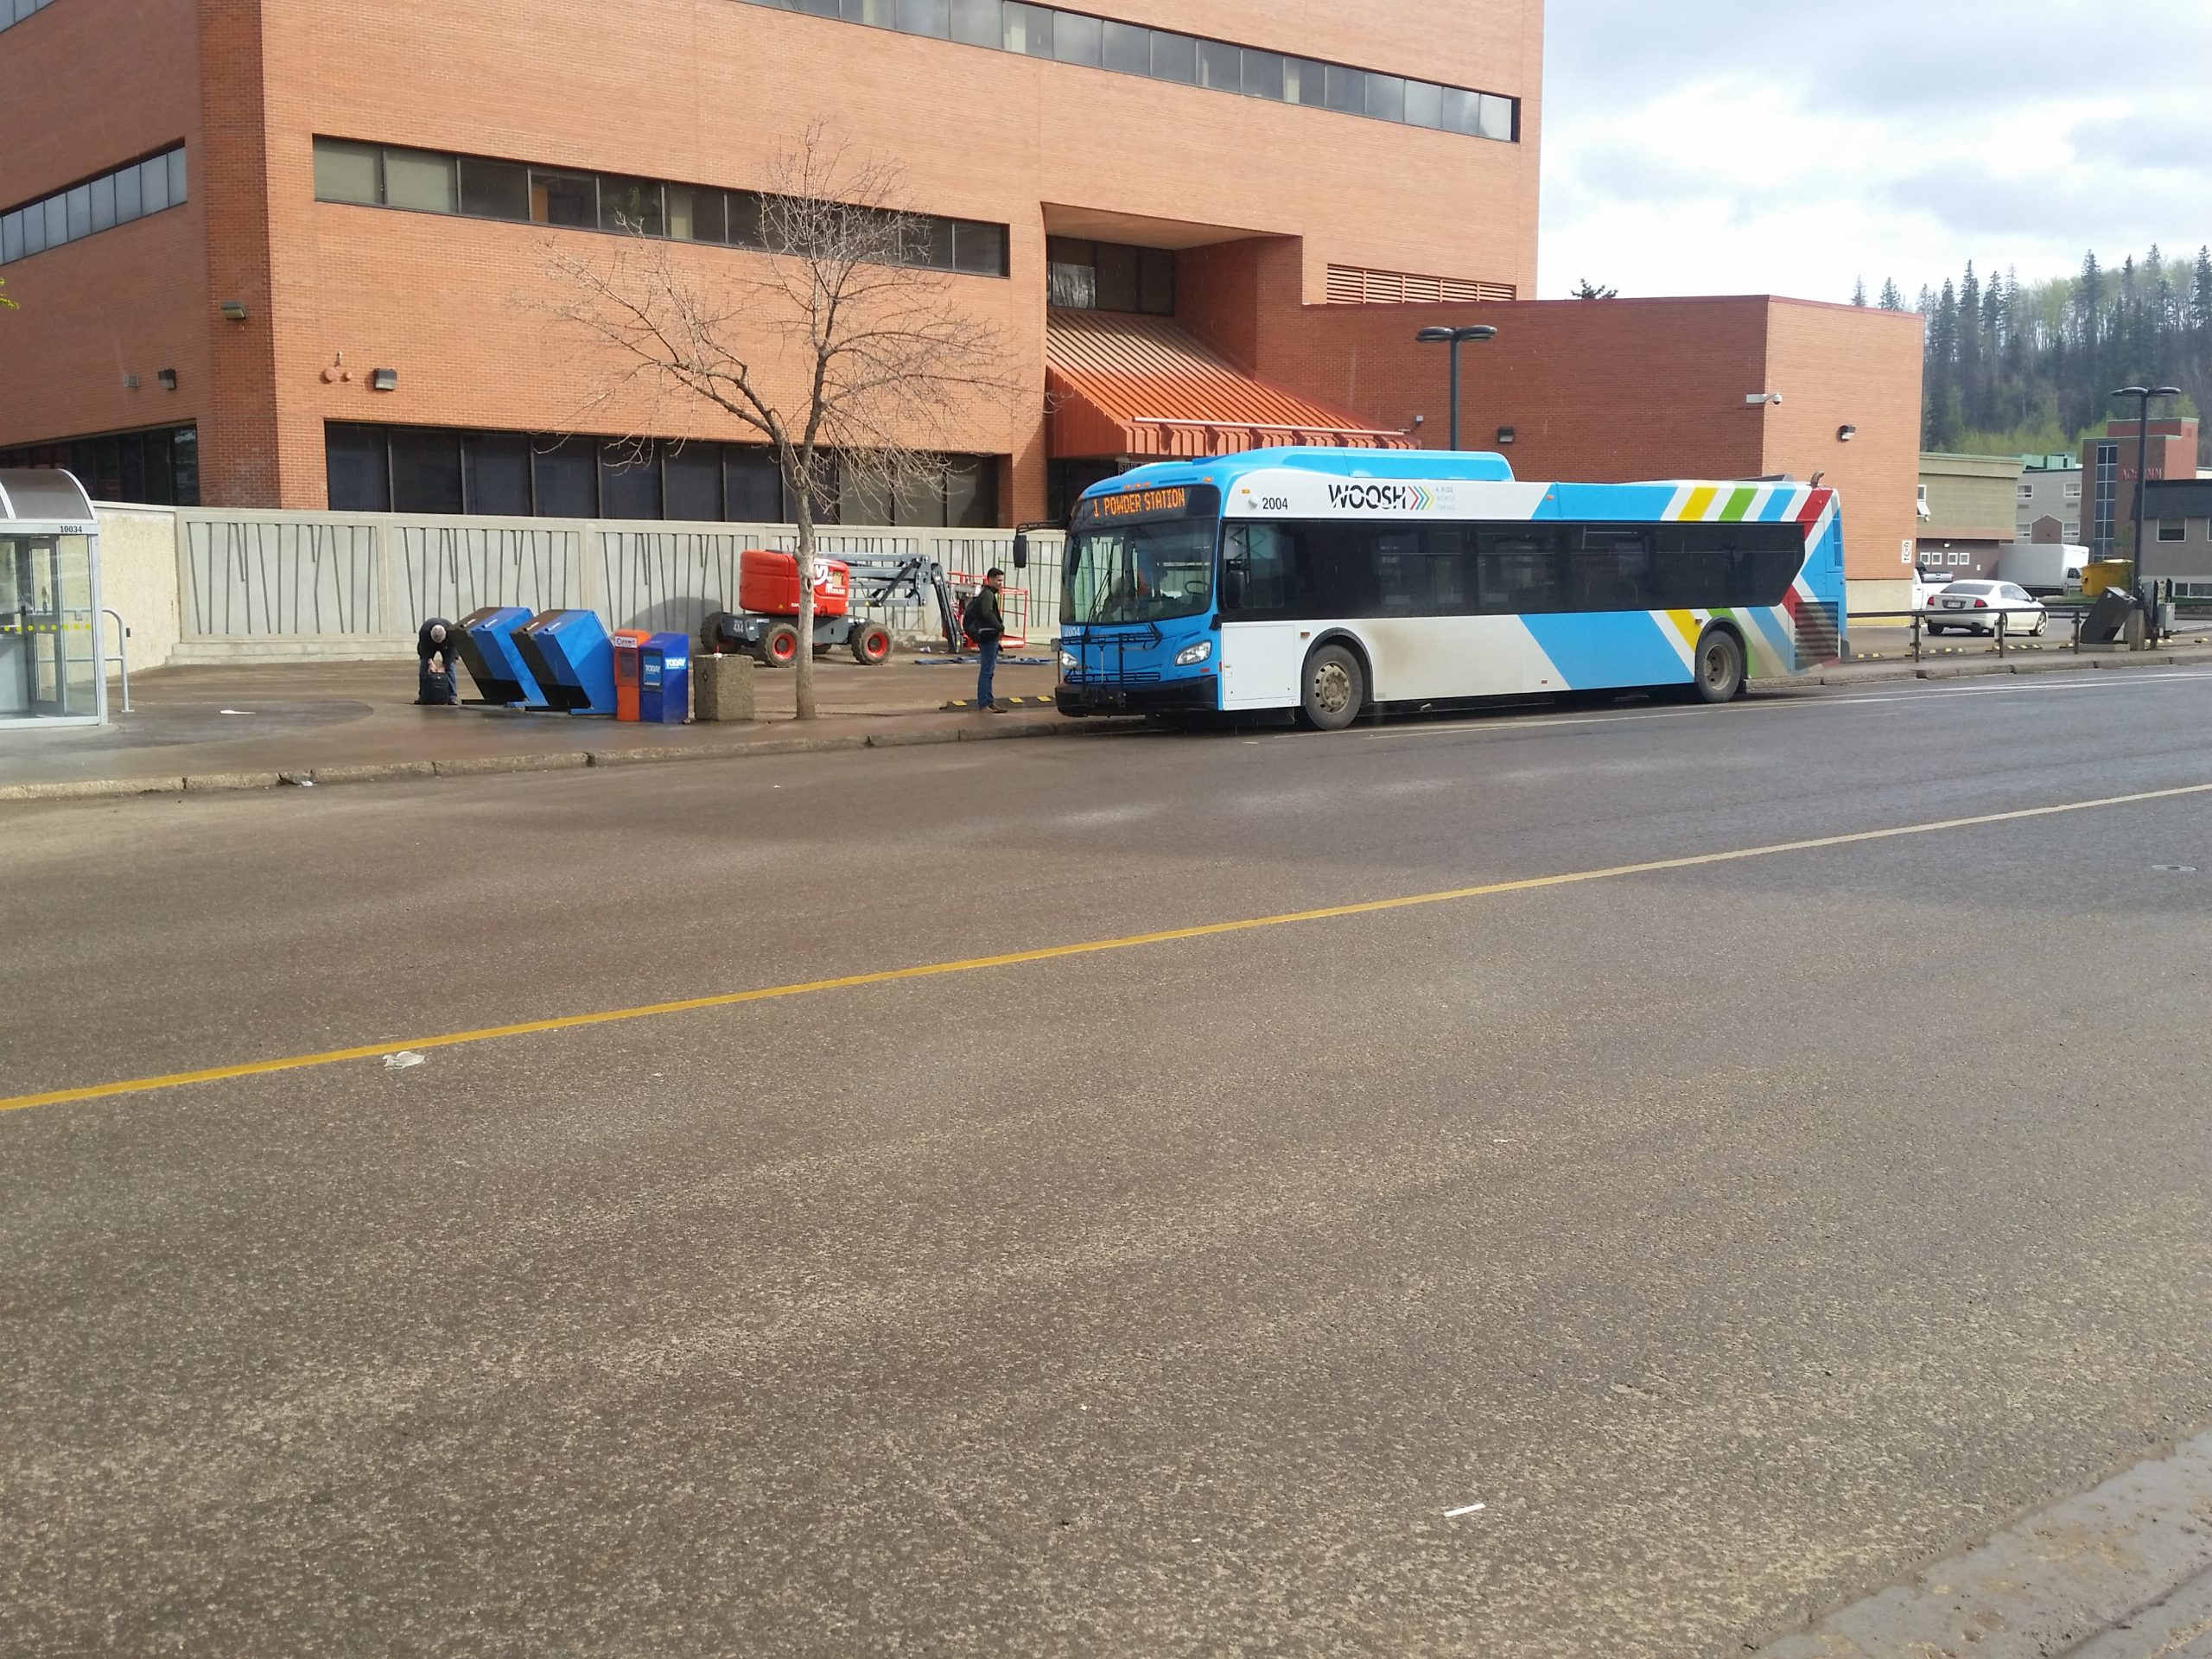 Confederation Way, Thickwood Boulevard Getting New Bus Turnouts